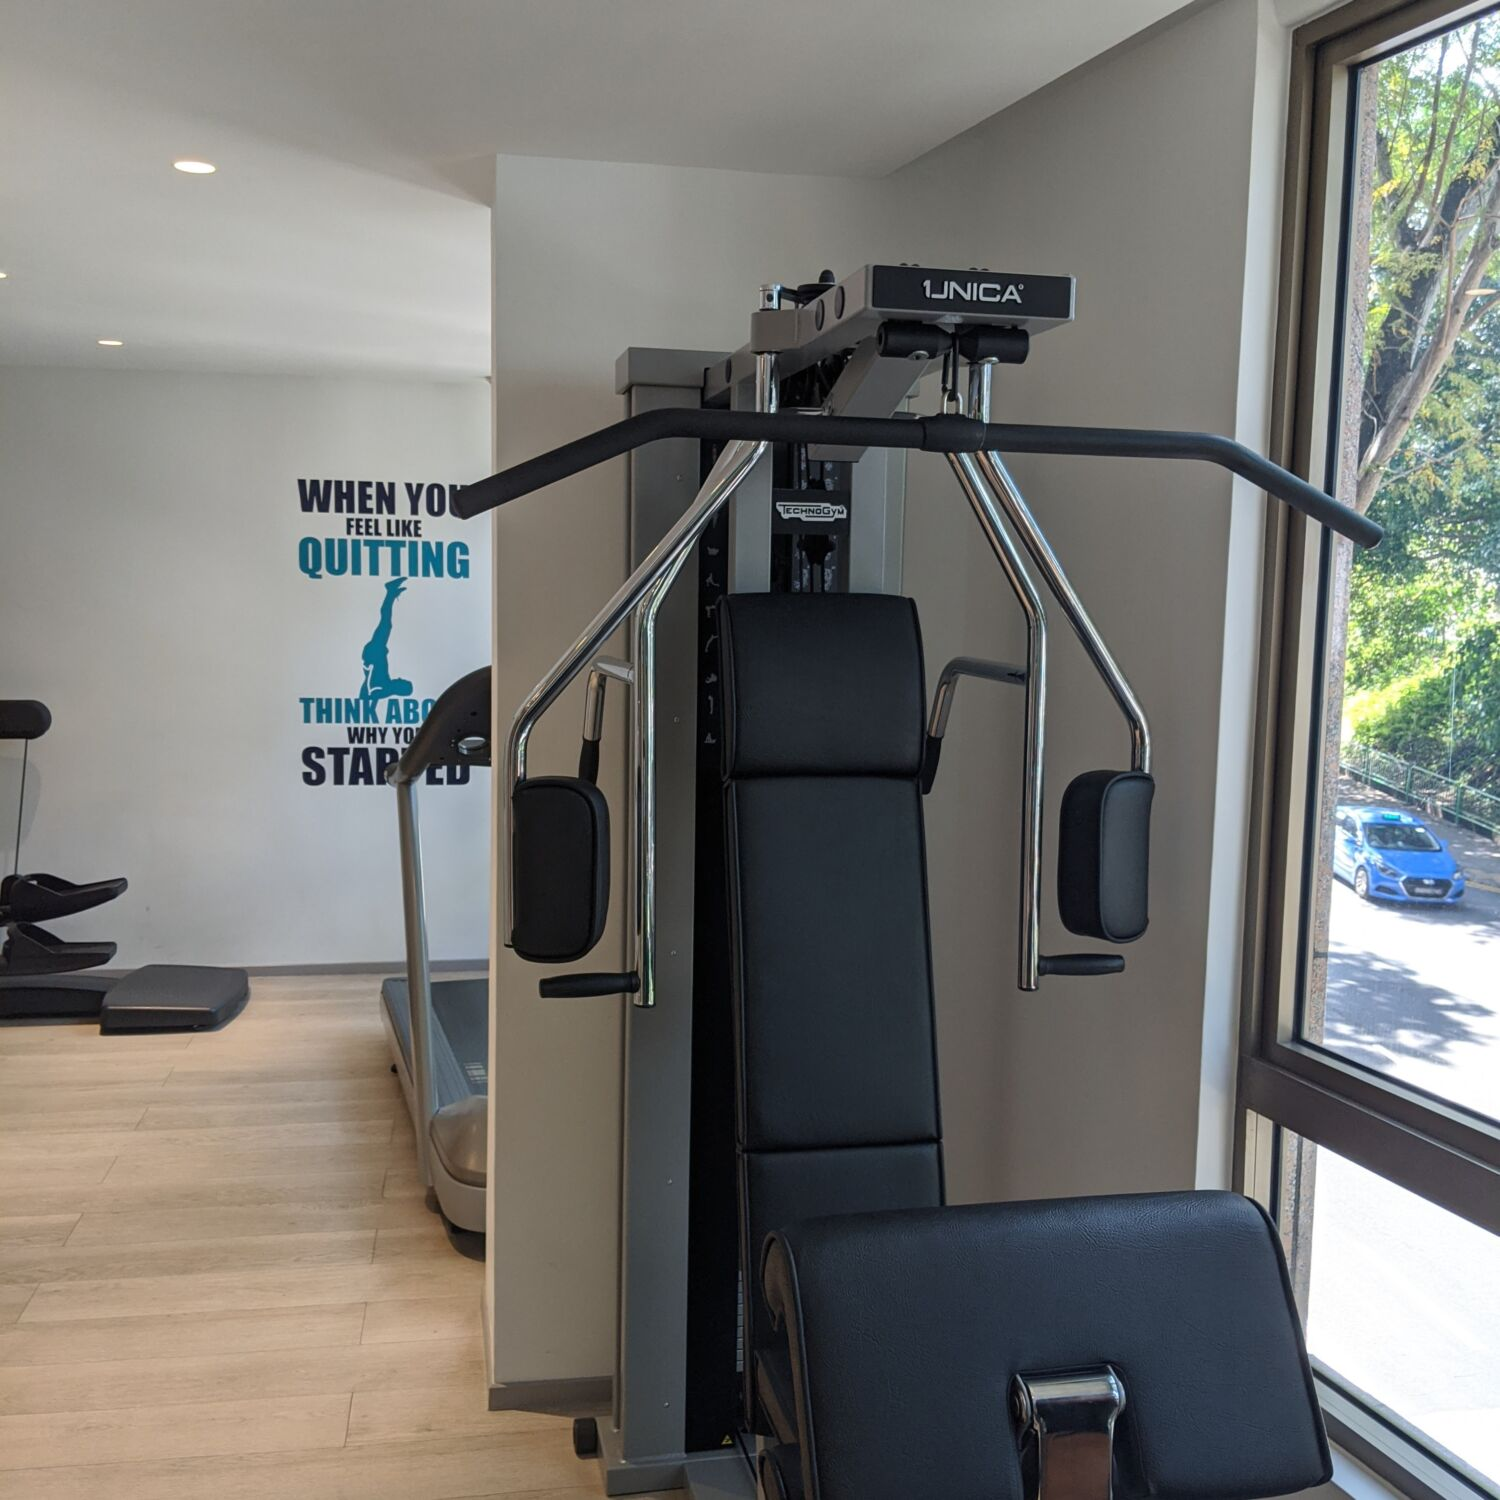 Winsland Serviced Suites by Lanson Place Gymnasium